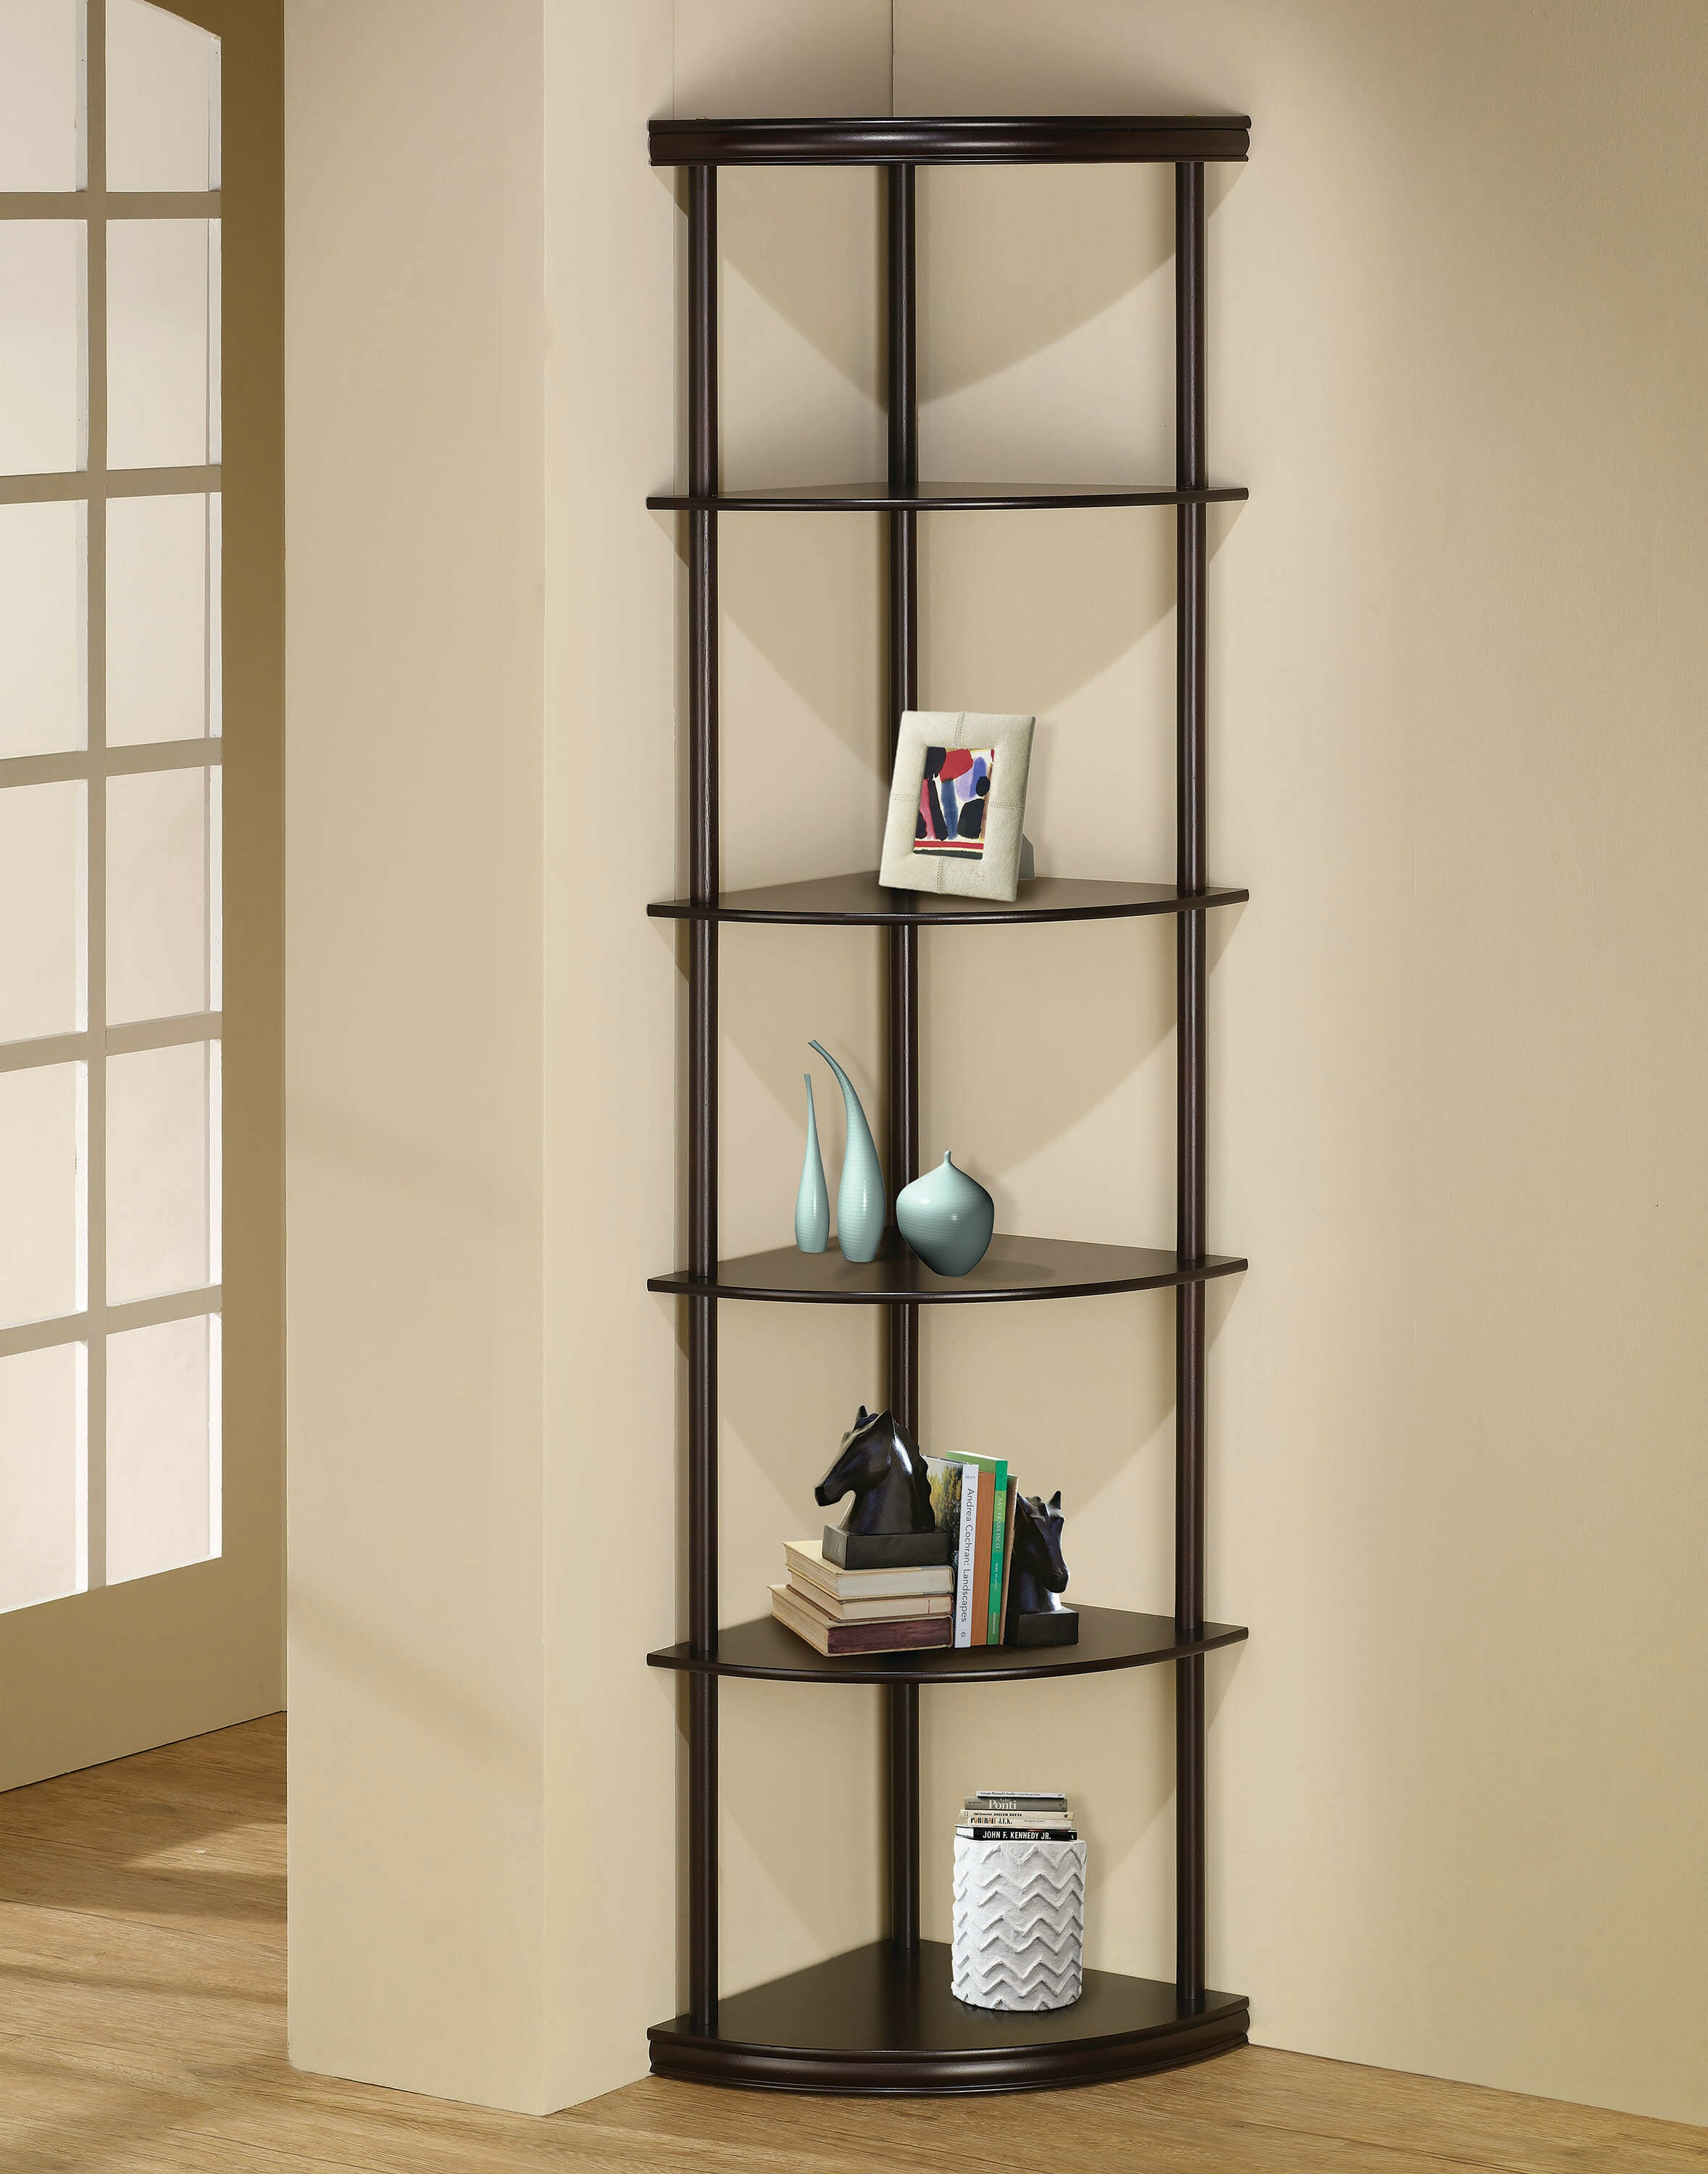 Genial A Piece Of Furniture That Has Got A Functional And Decorative Character.  This Corner Shelf Offers A Durable Frame And Plenty Of Space For Storage Of  Books ...